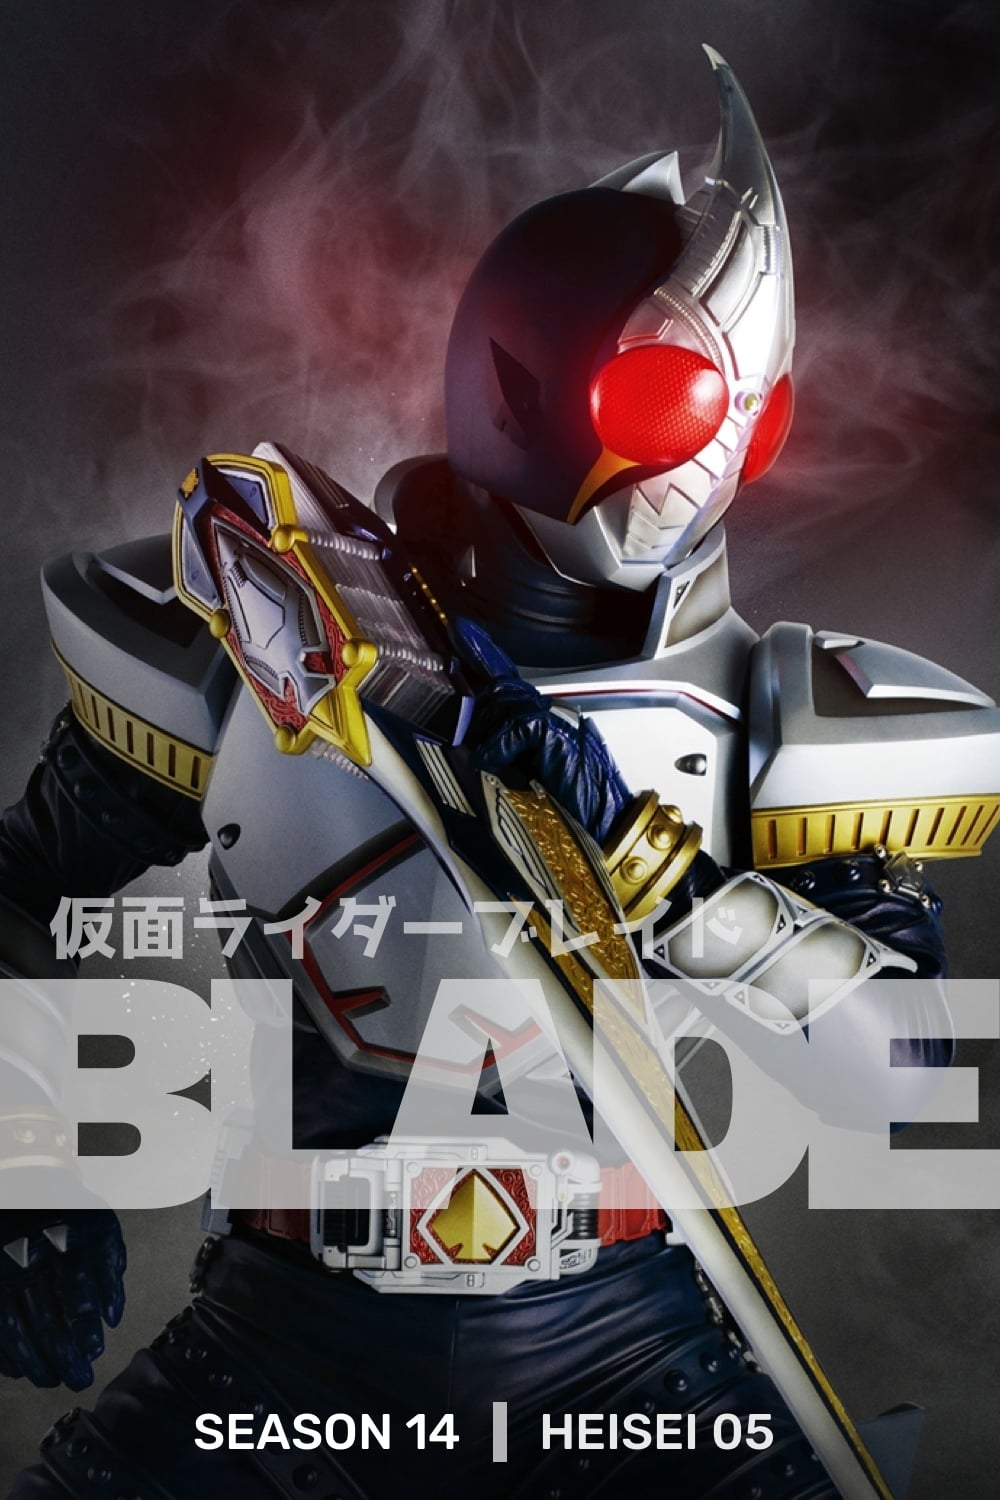 Kamen Rider - Season 21 Episode 35 : Dreams, Brother, Birth's Secret Season 14